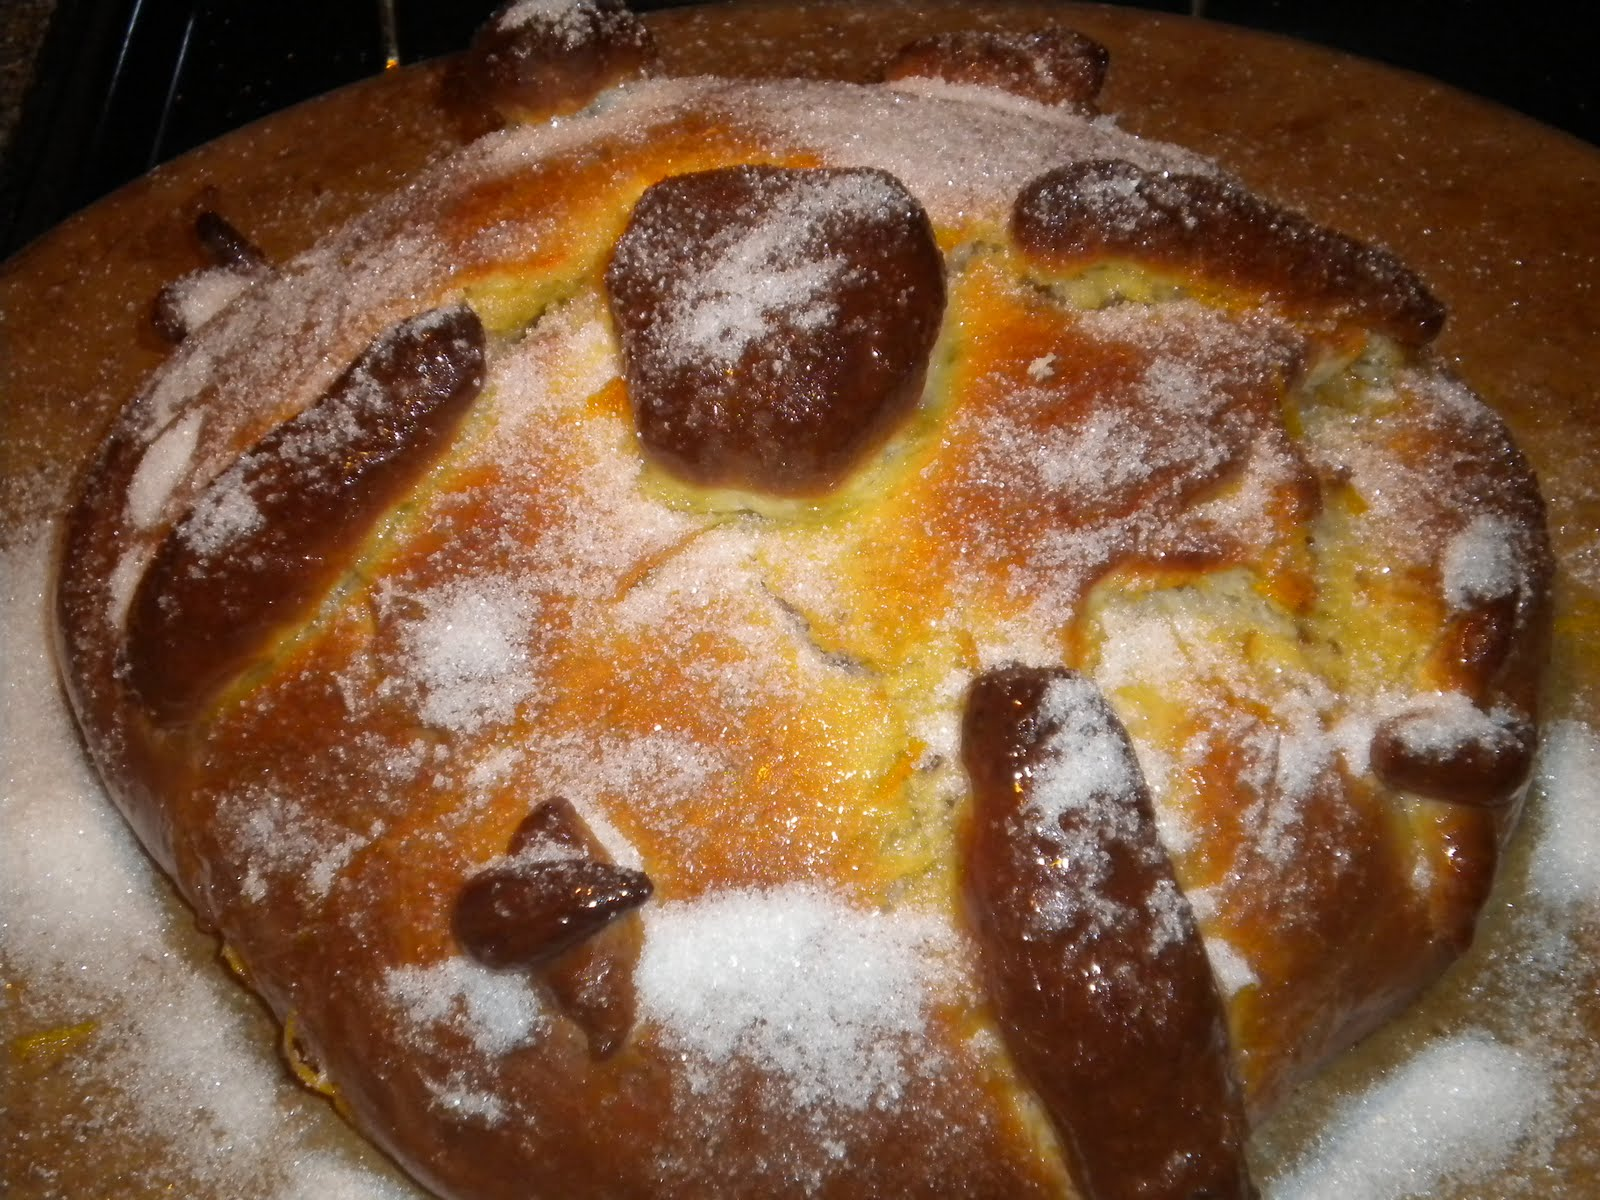 2nd dia de los muertos day of the dead with pan de muerto bread of